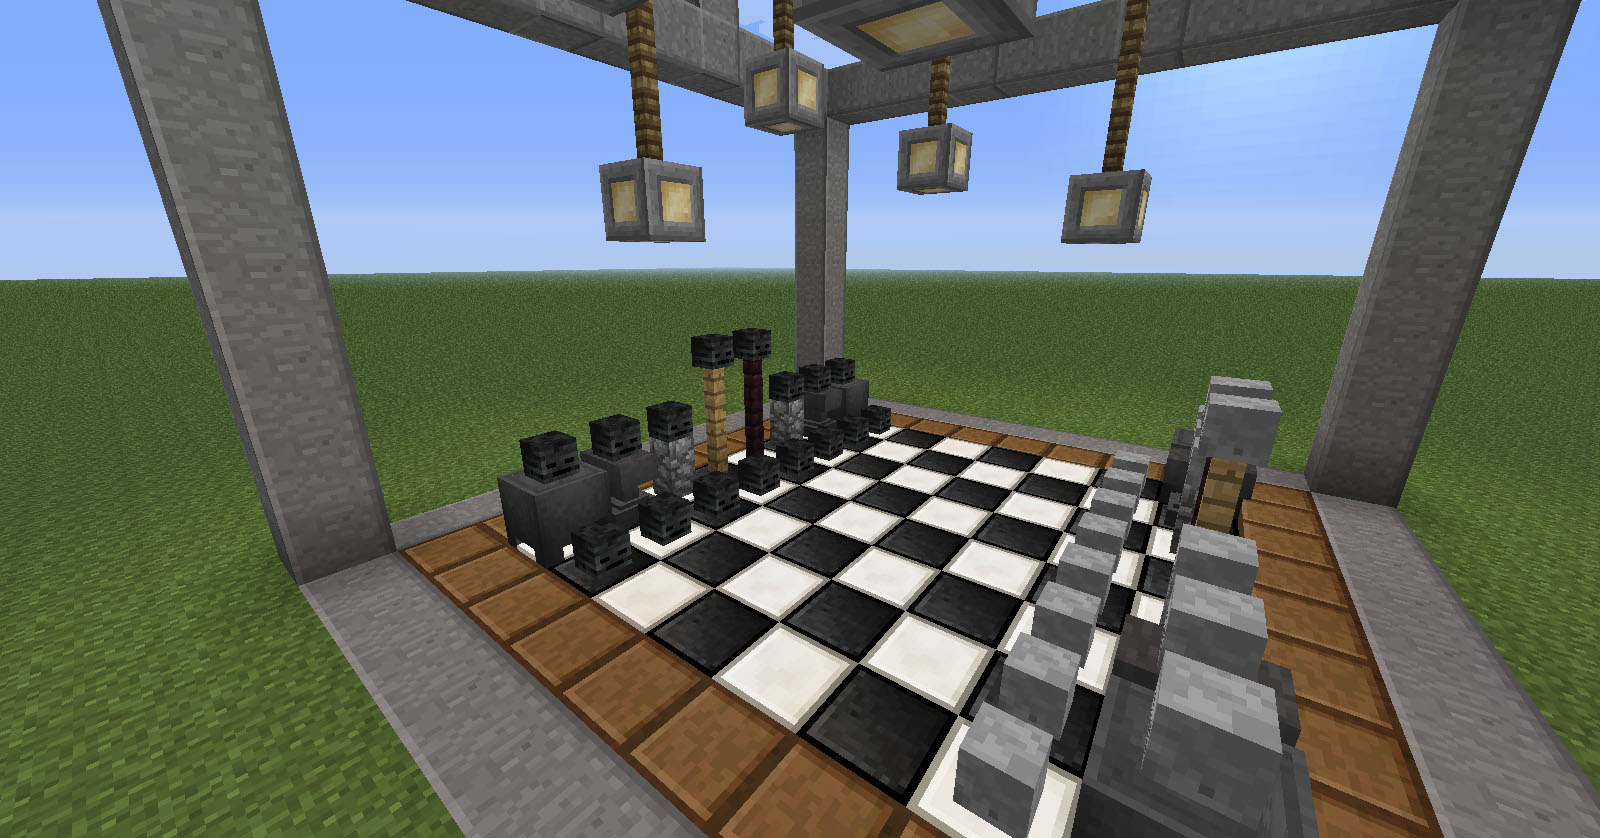 http://minecraft-forum.net/wp-content/uploads/2013/07/93a47__Extrapolated-Decor-Mod-2.jpg